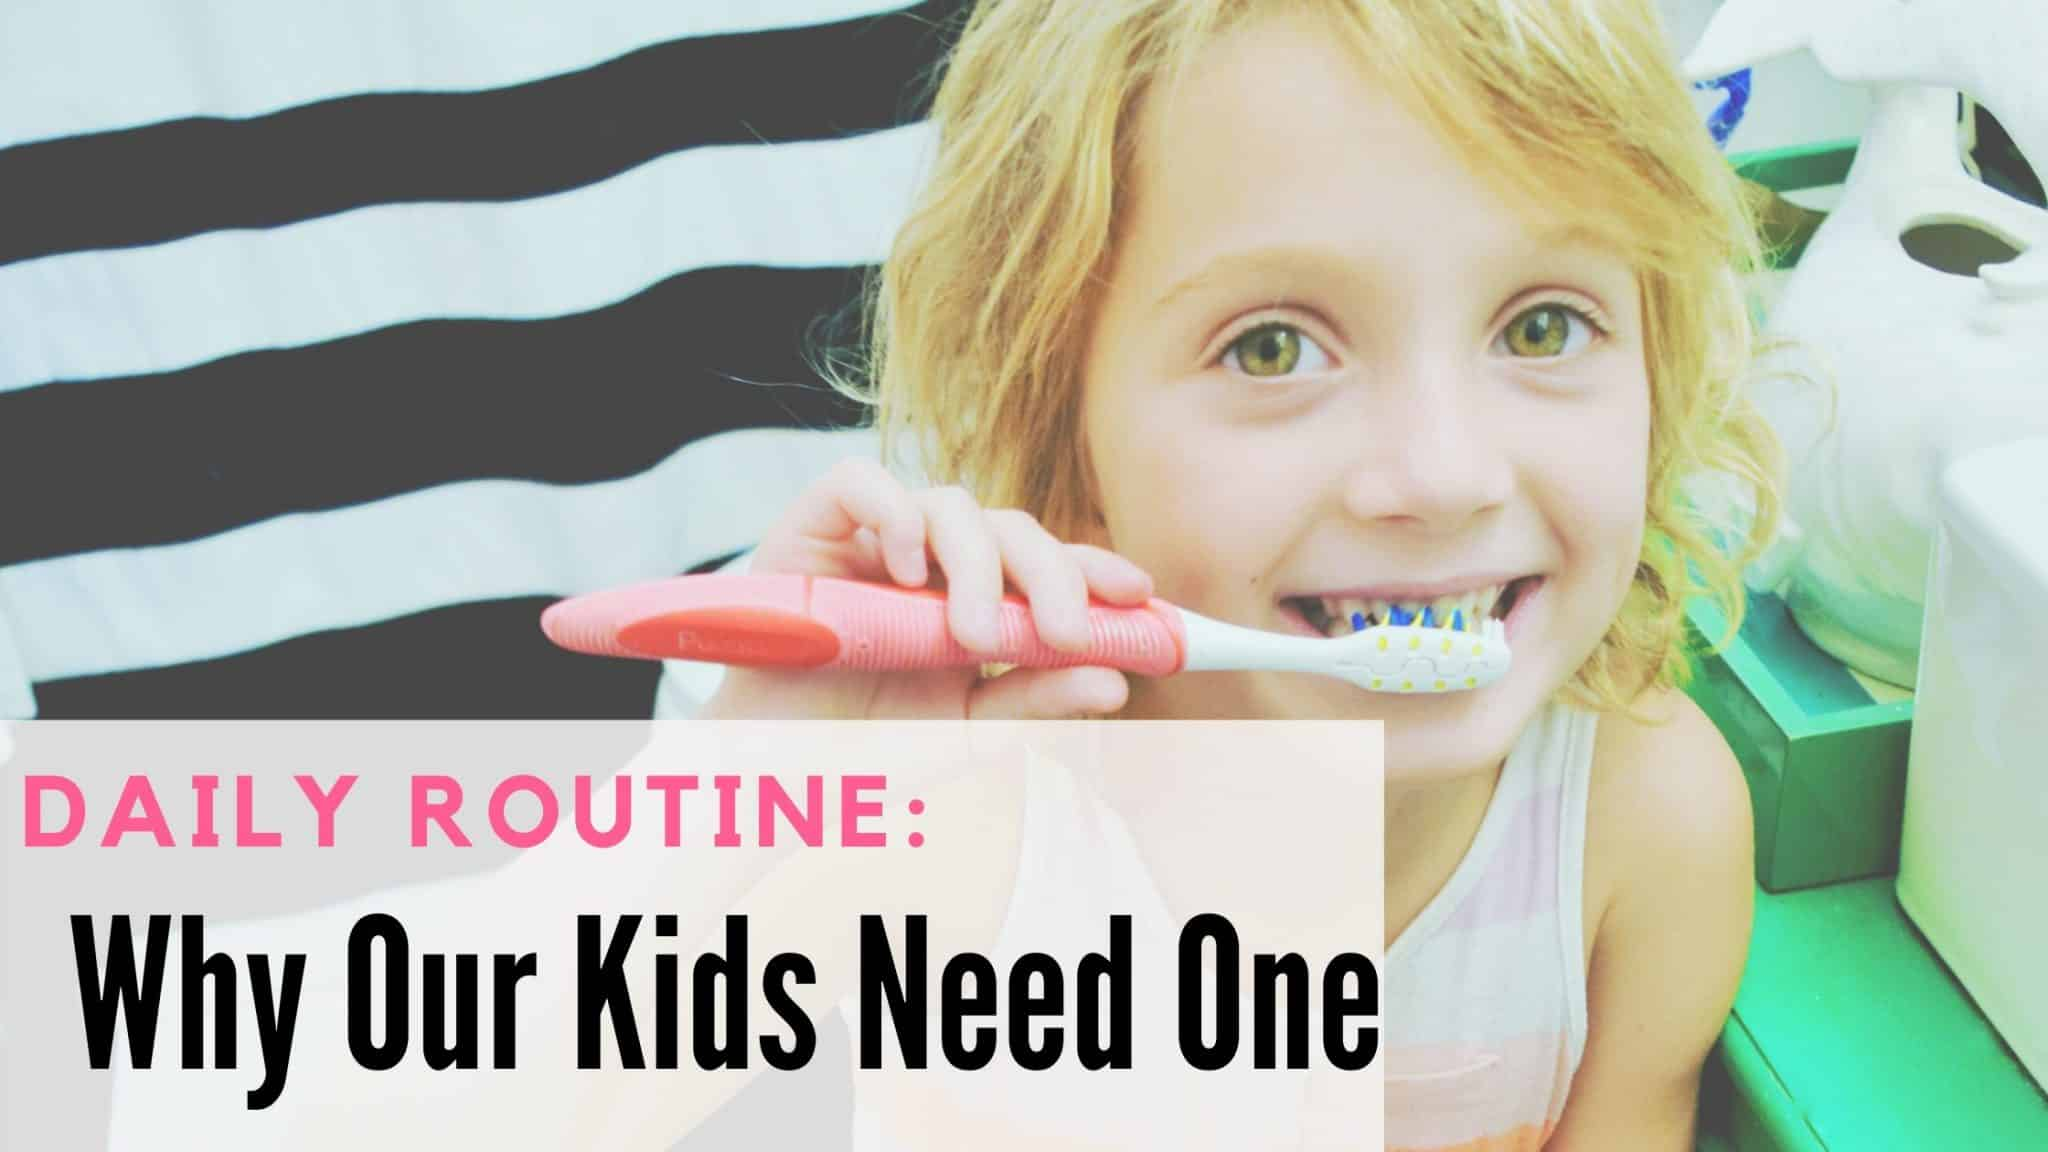 Daily Routine: Why our kids need one